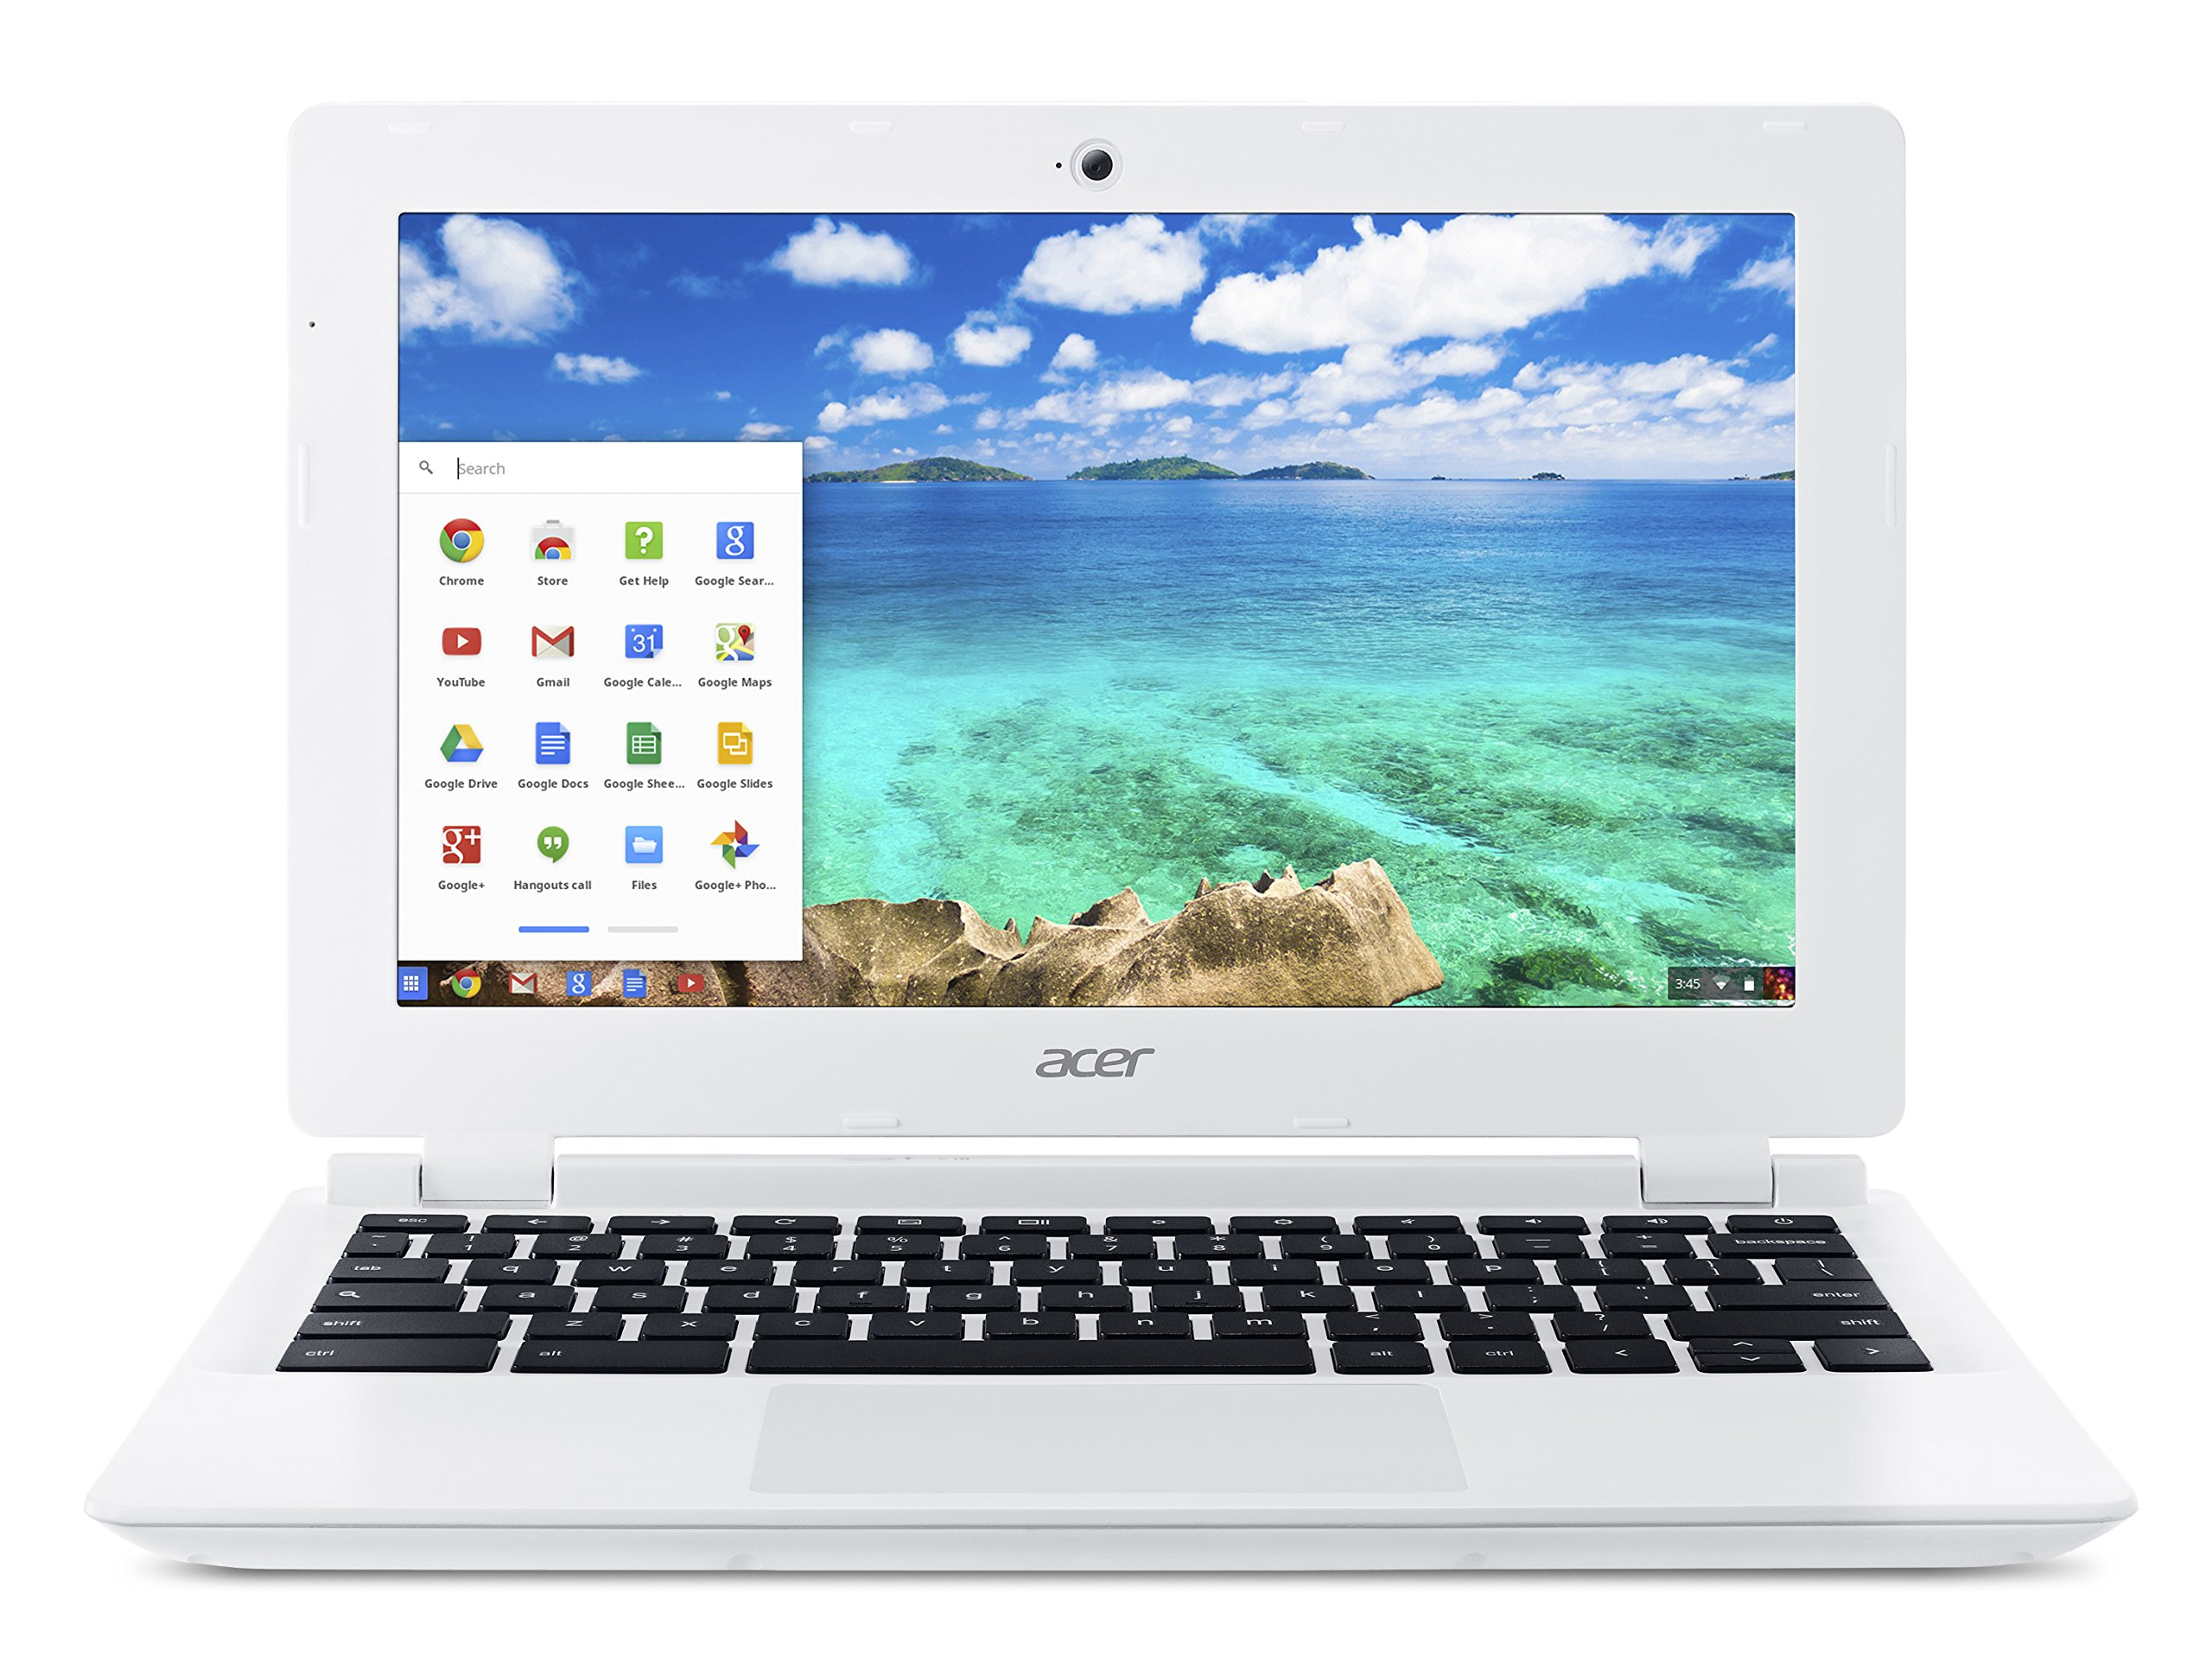 Acer Chromebook 11 CB3-111-C670 (11.6-inch HD, 2GB, 16GB)